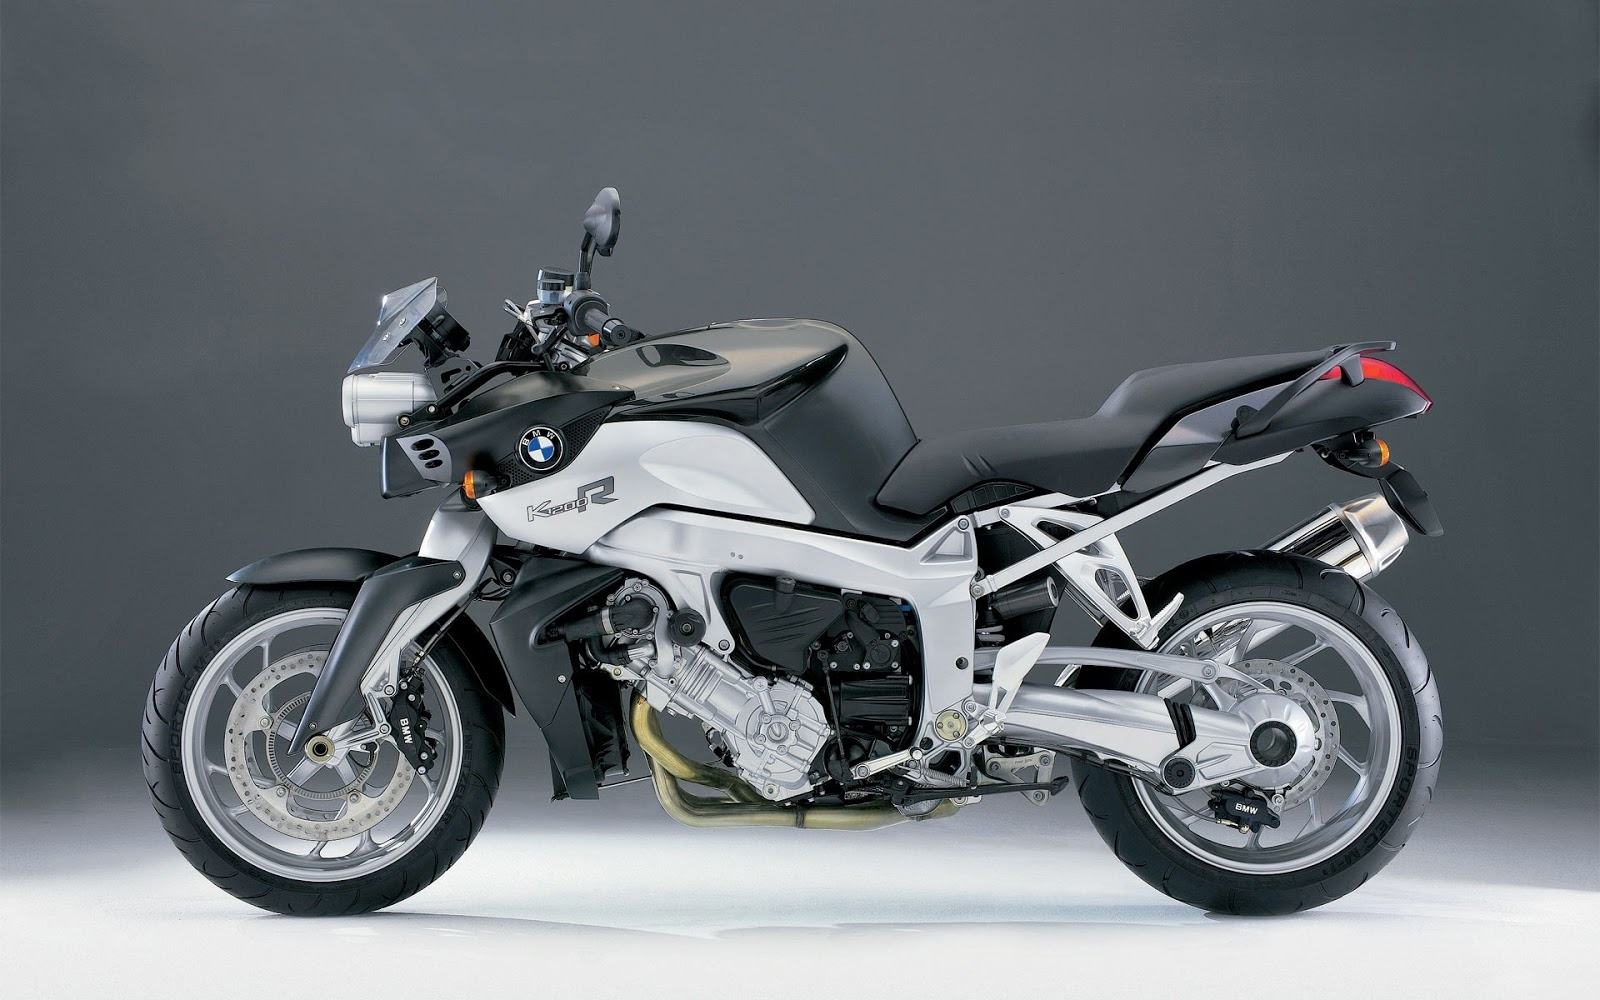 PixBikes  Coolest Motorcycle Pictures and Images  BMW K1200R